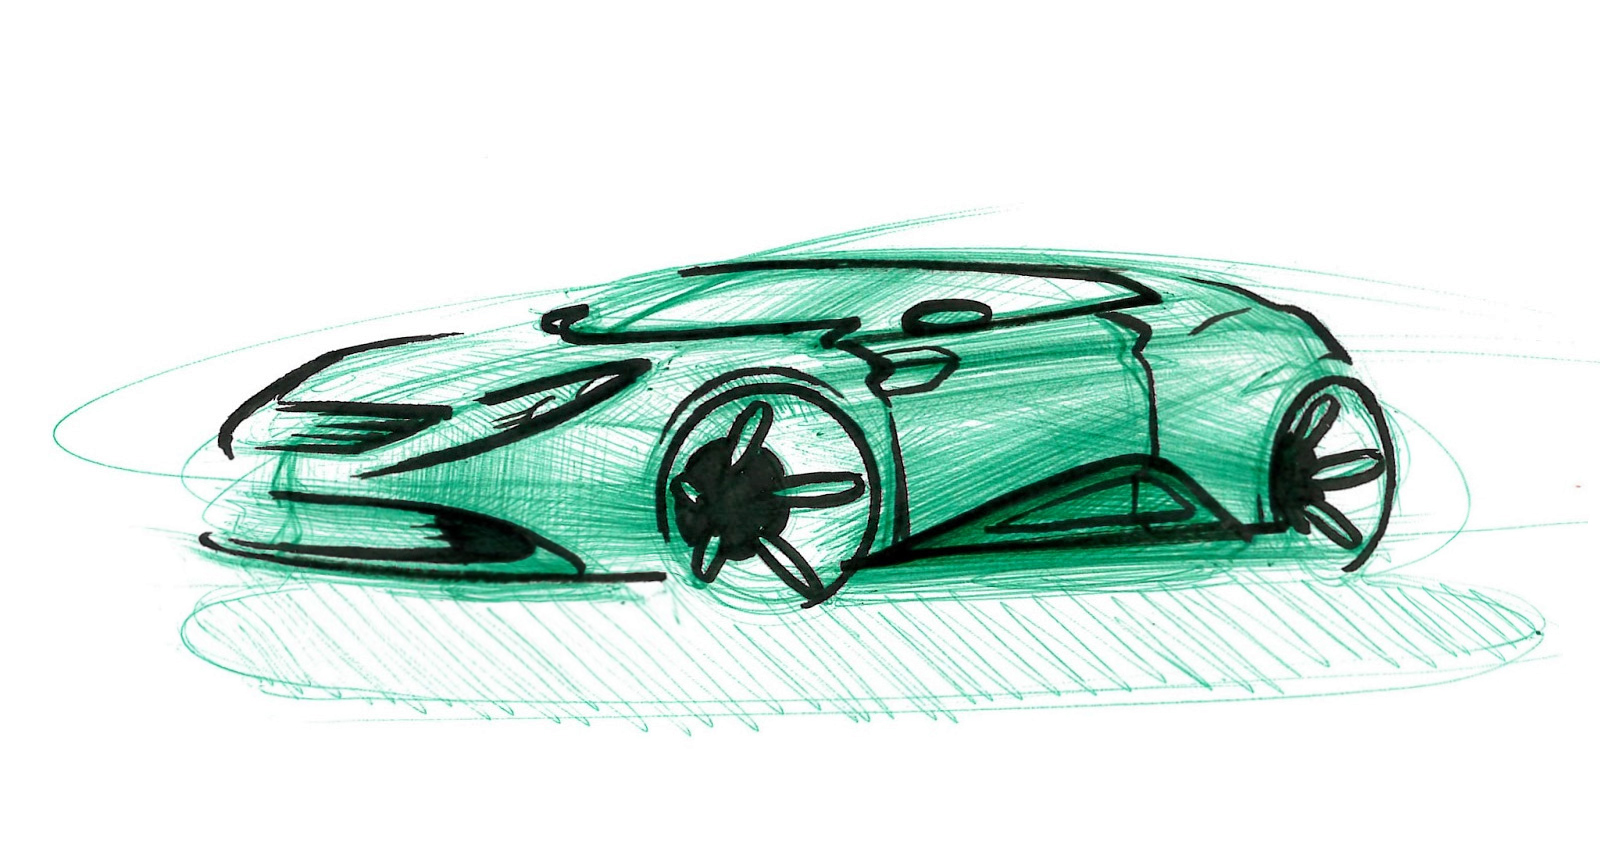 Simon Larsson - Sketchwall: Saving a car sketch with a marker